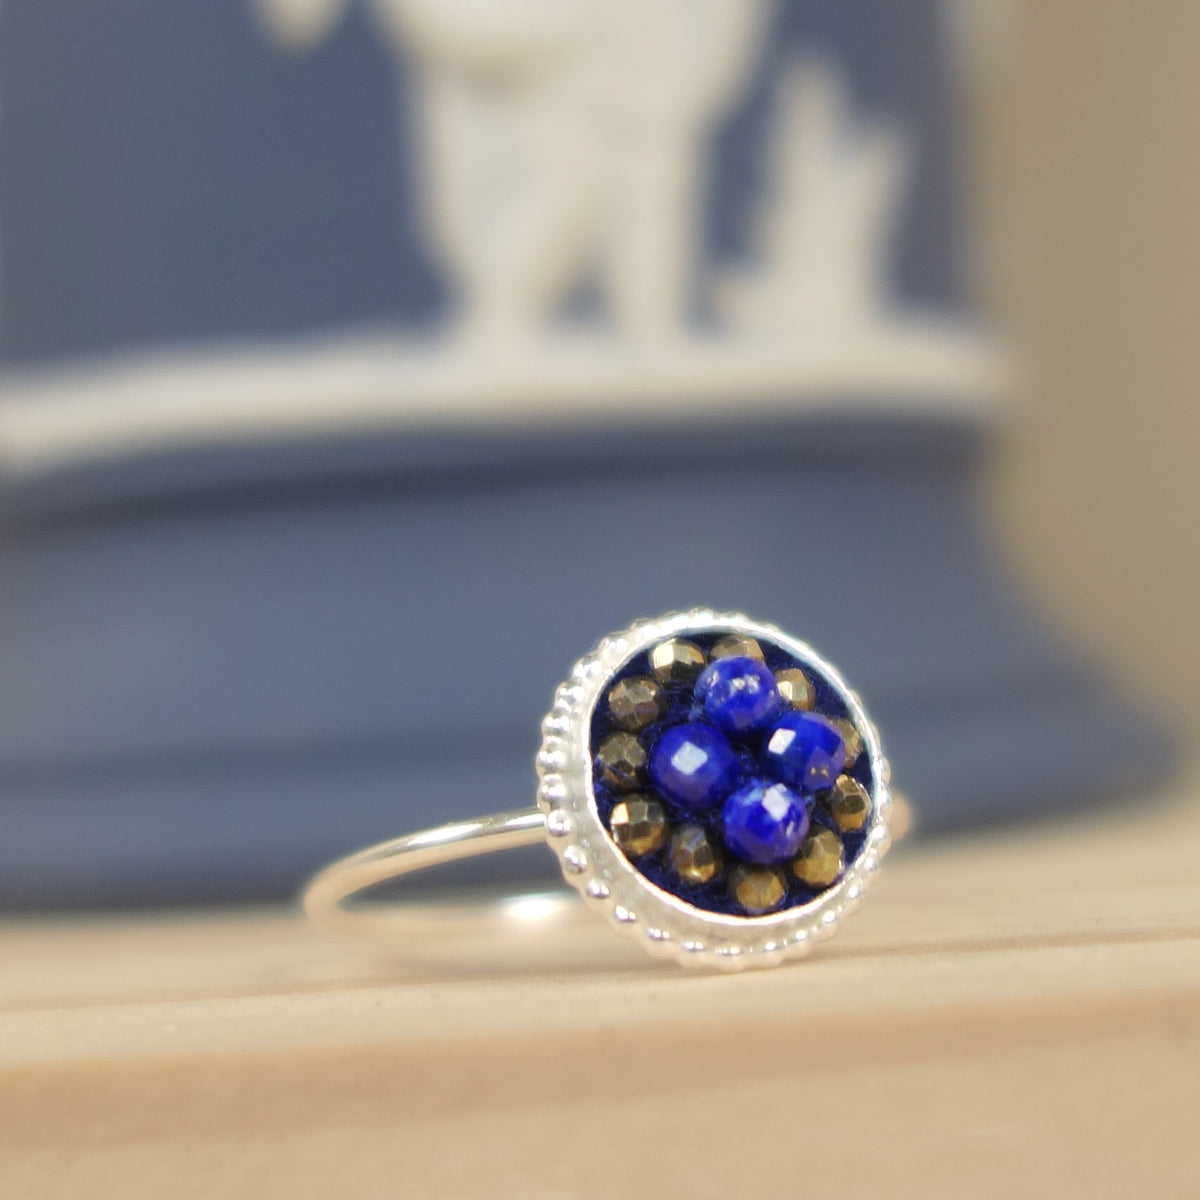 Singing in Perfect Harmony mosaic ring